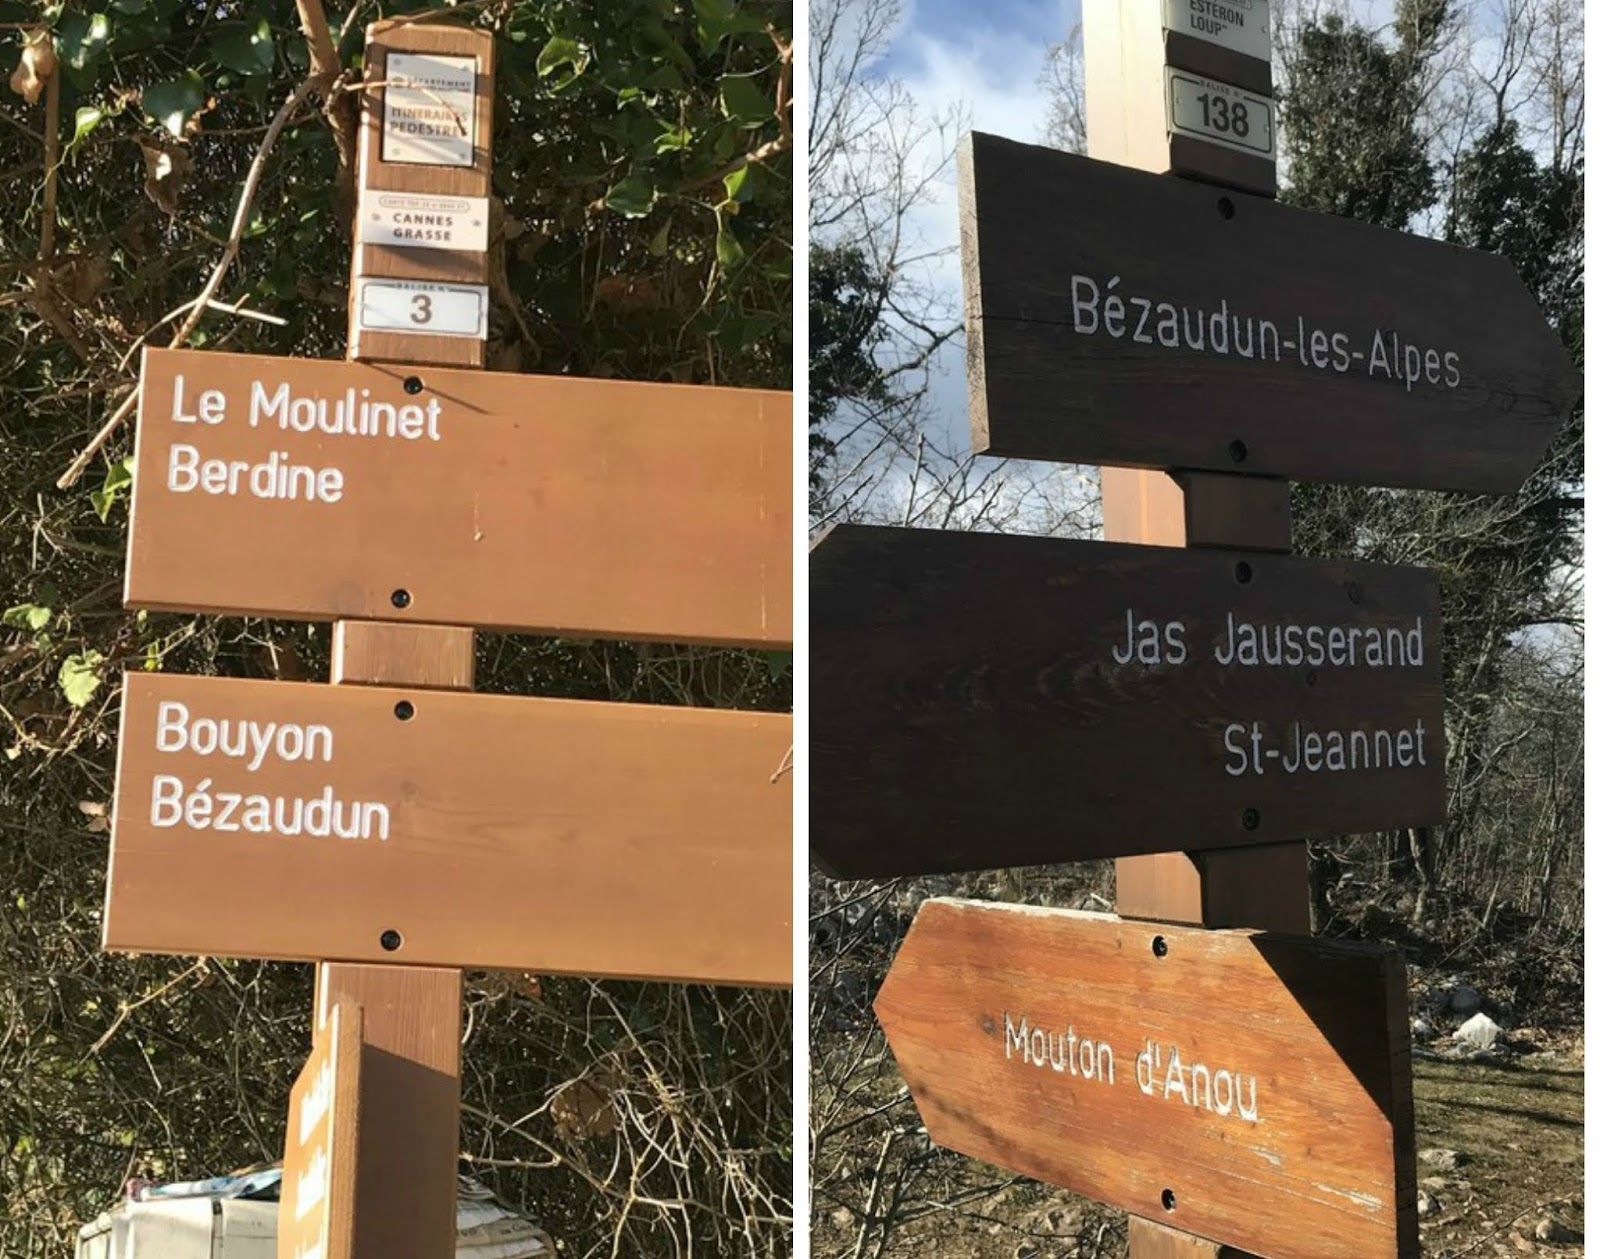 Signposts on trail to Mouton d'Anou